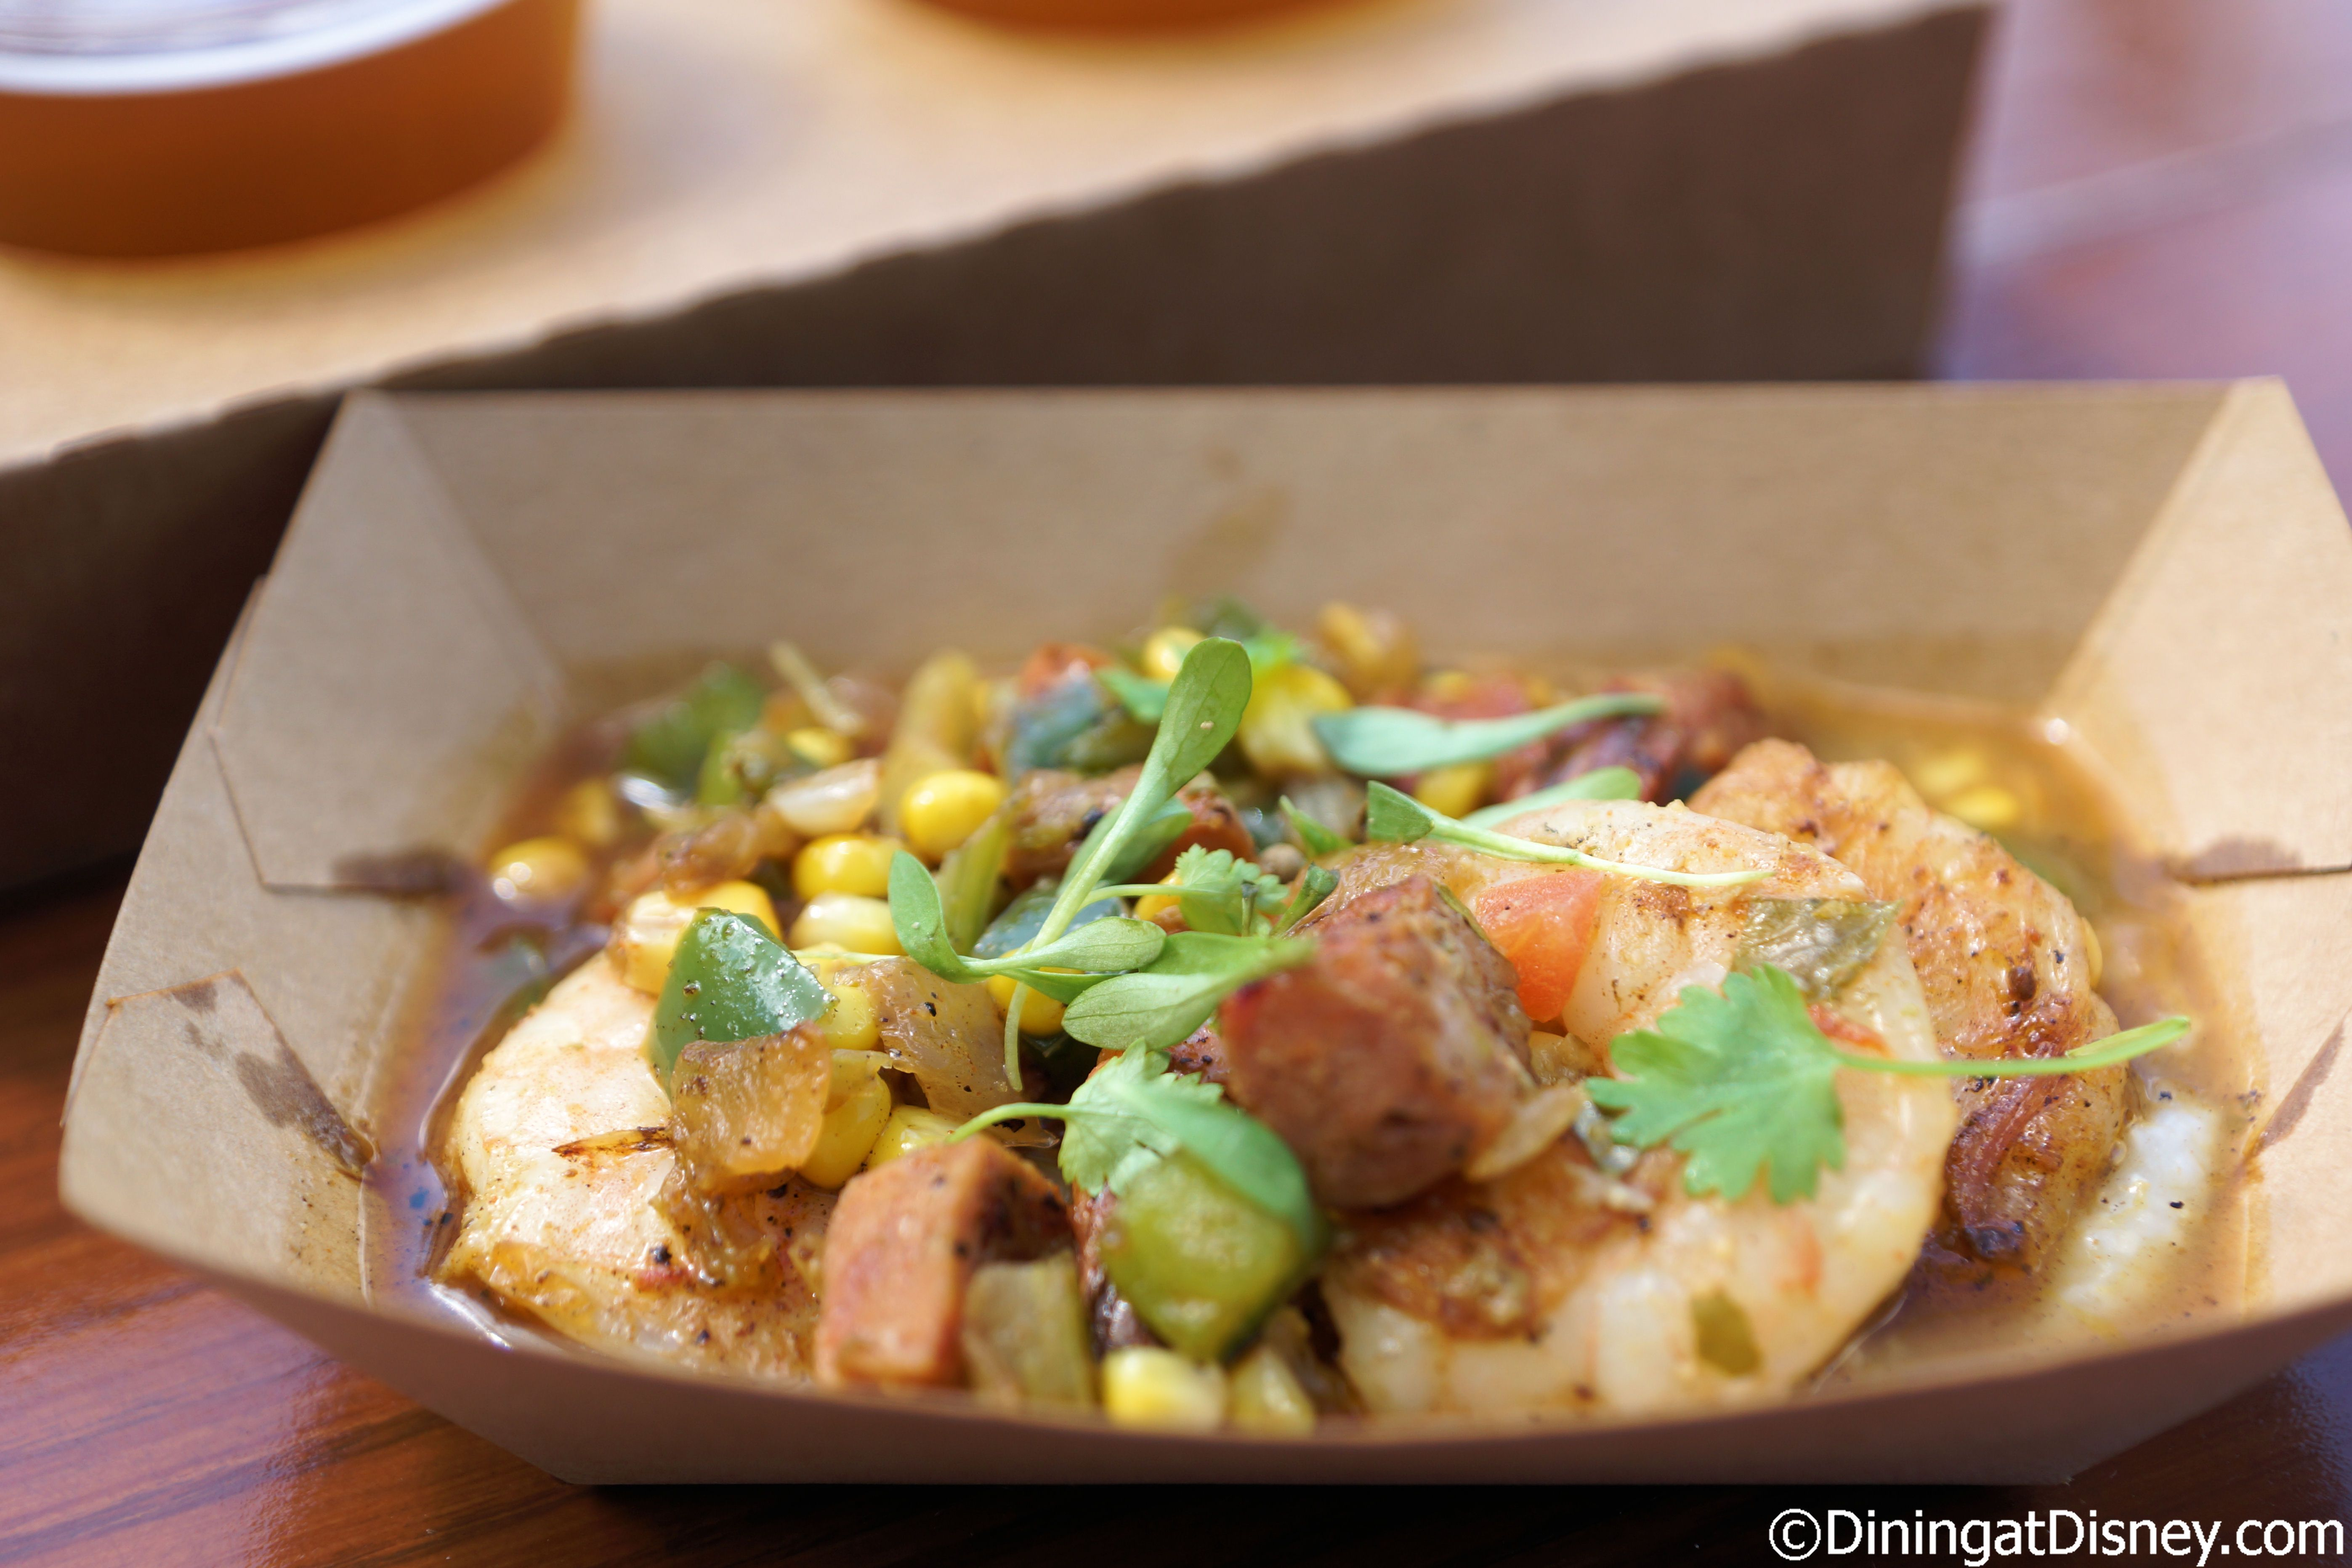 Shrimp and grits from Florida Fresh at the 2015 Epcot Flower and Garden Festival Outdoor Kitchens